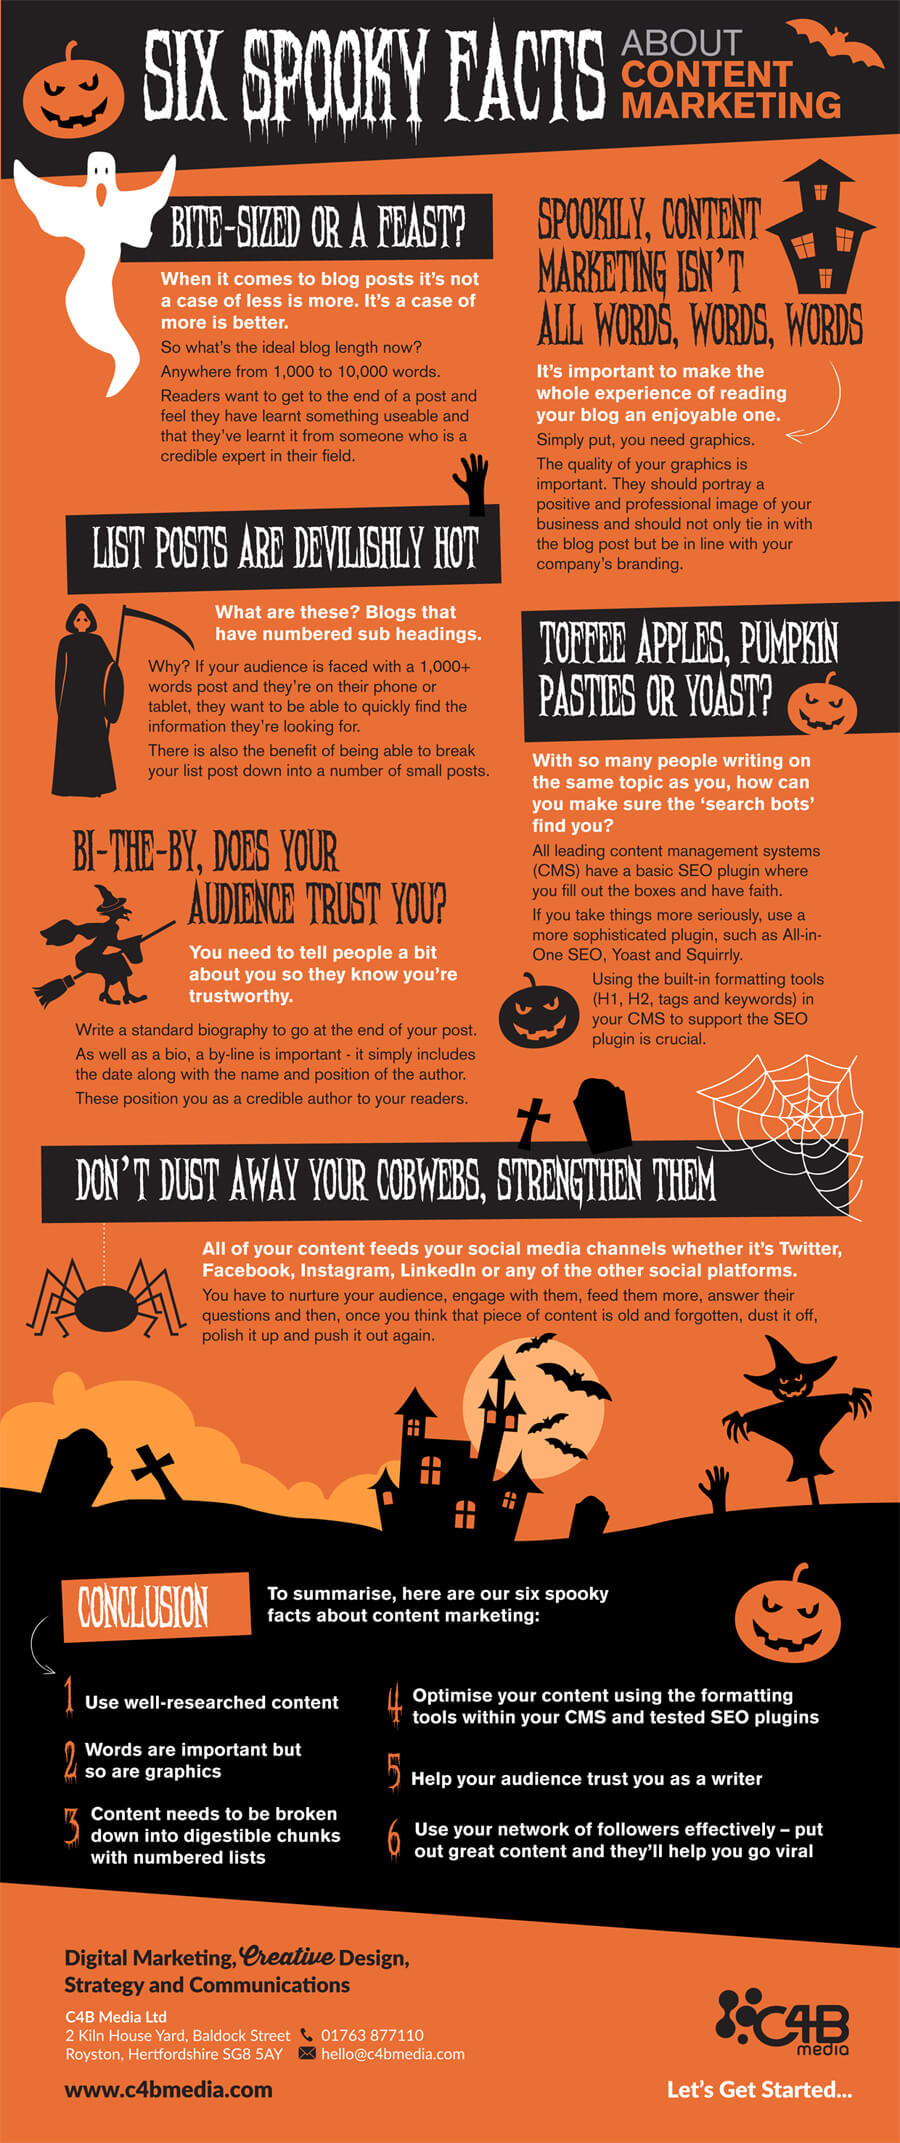 six spooky facts about content marketing - c4b media